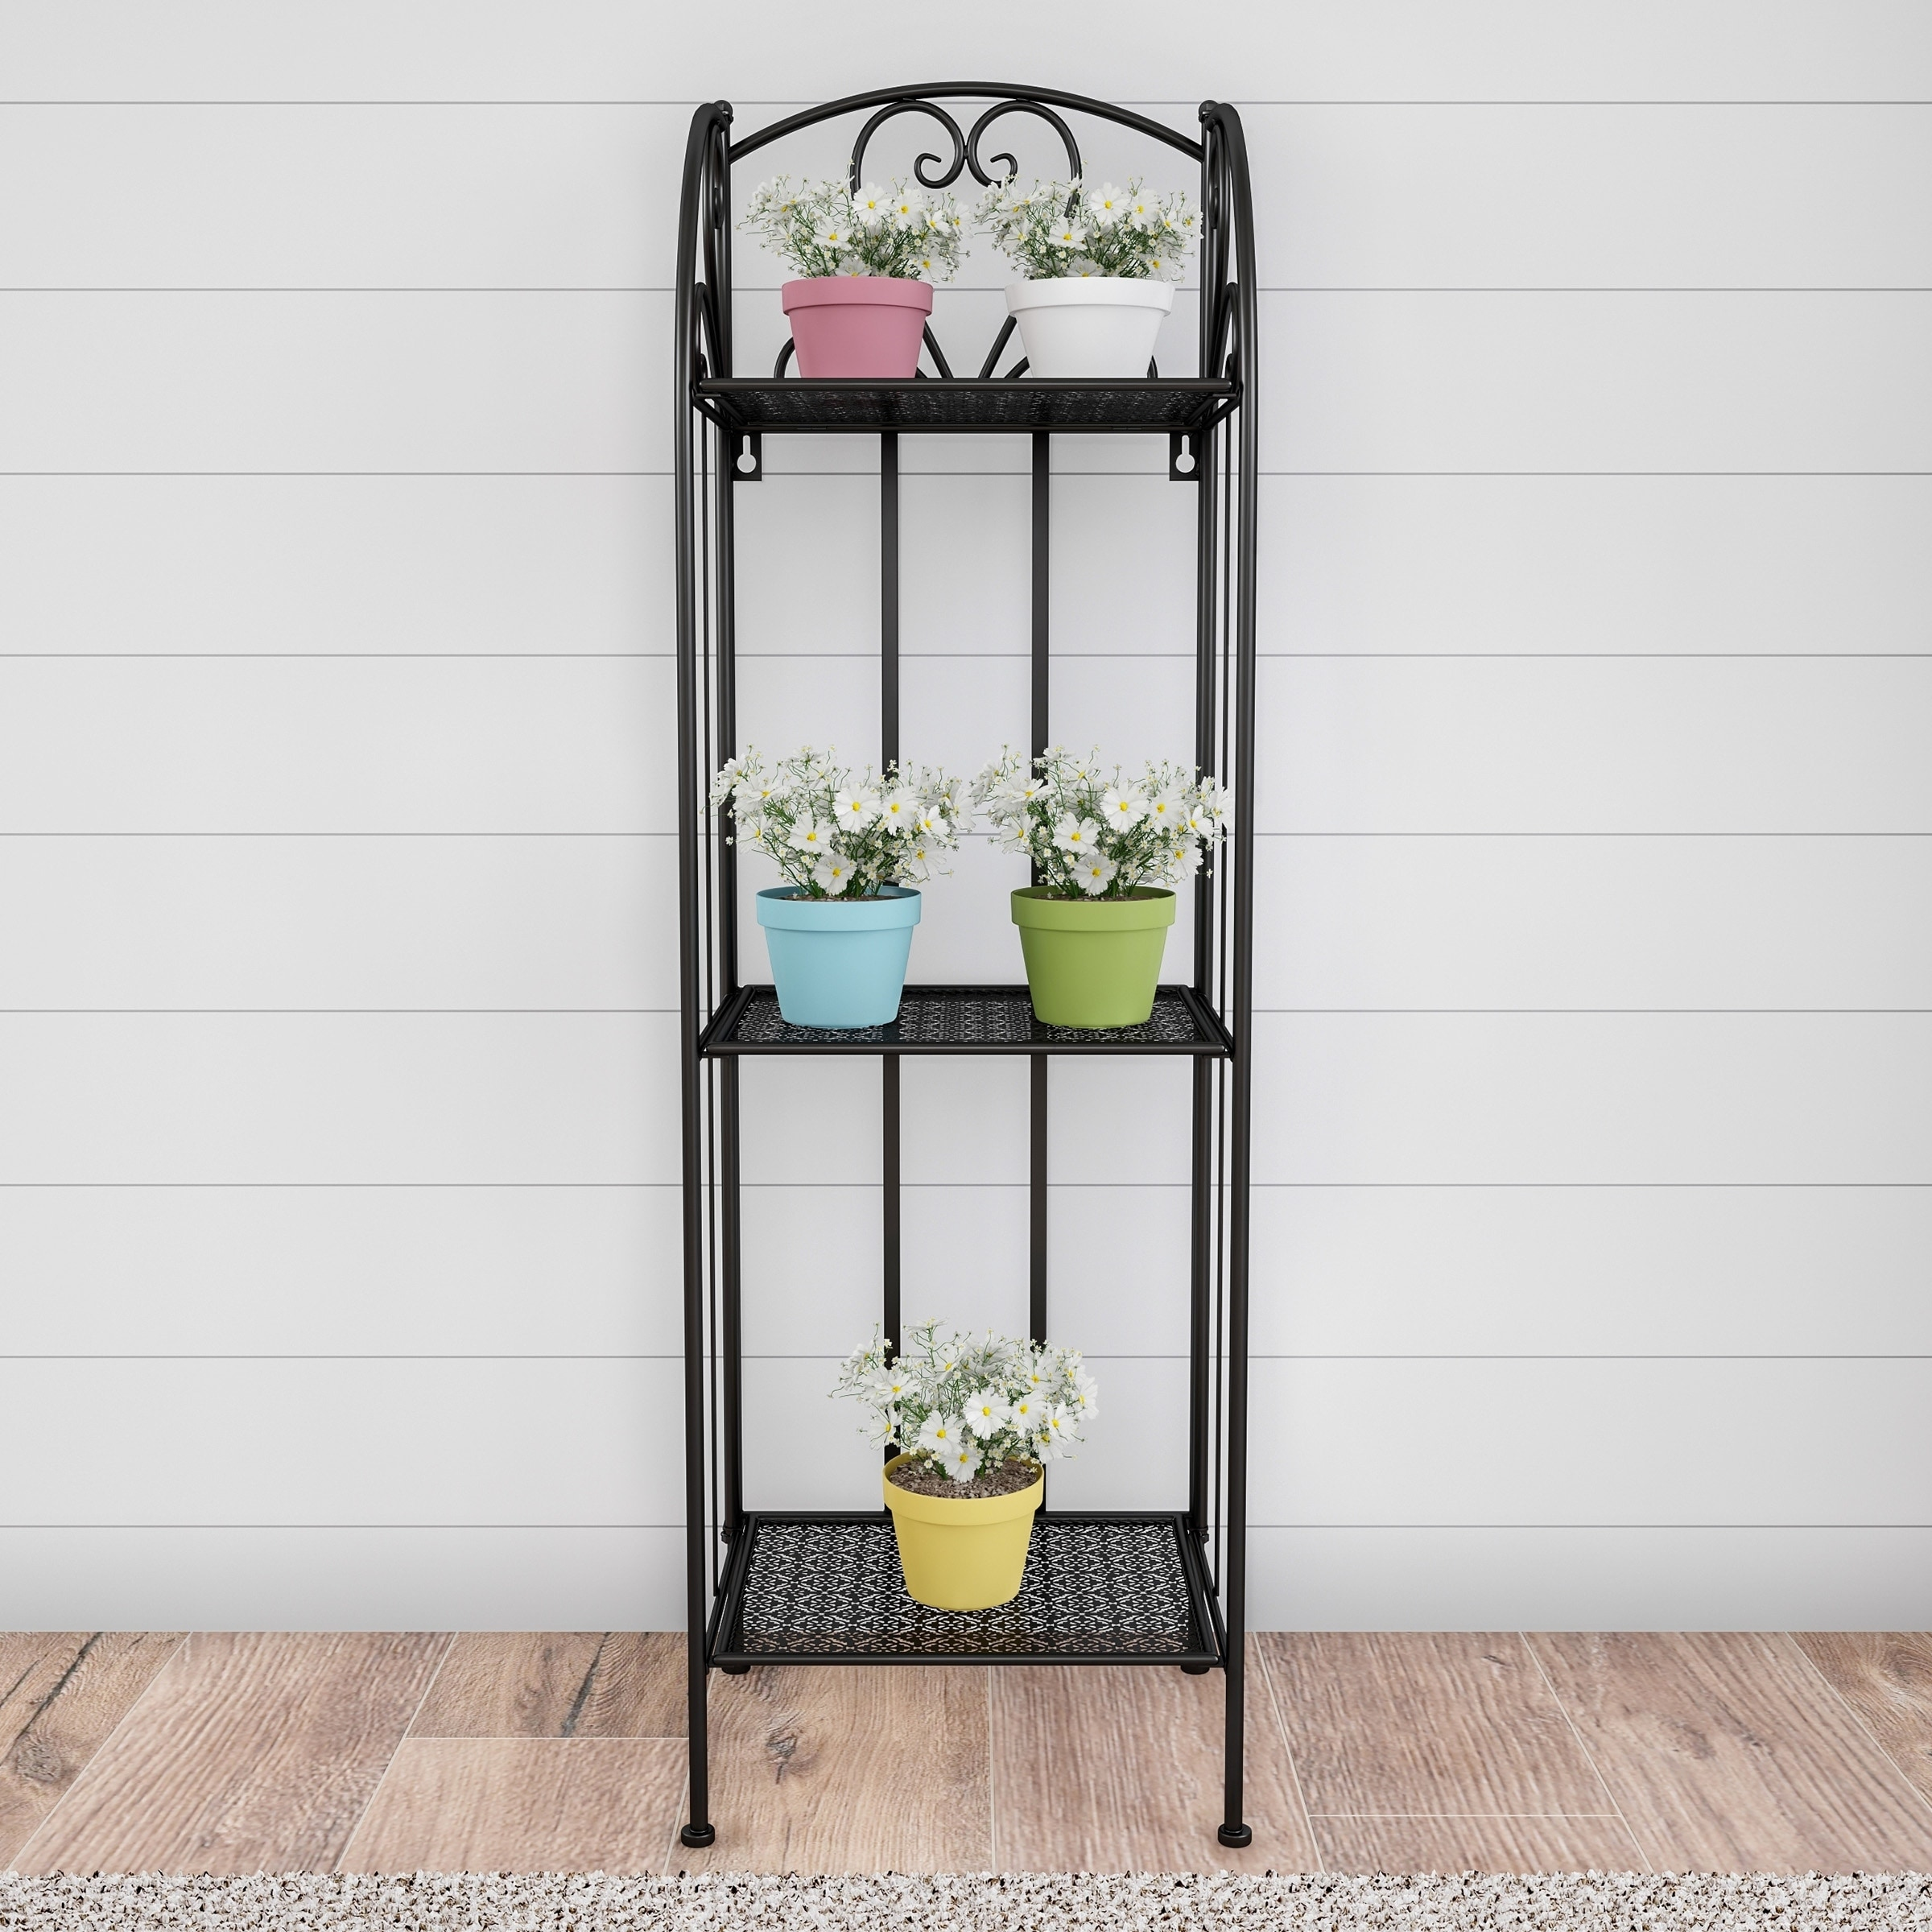 Plant Stand 3 Tier Vertical Shelf Folding Wrought Iron Metal Home And Garden Display With Staggered Shelves By Pure Garden Overstock 27866275